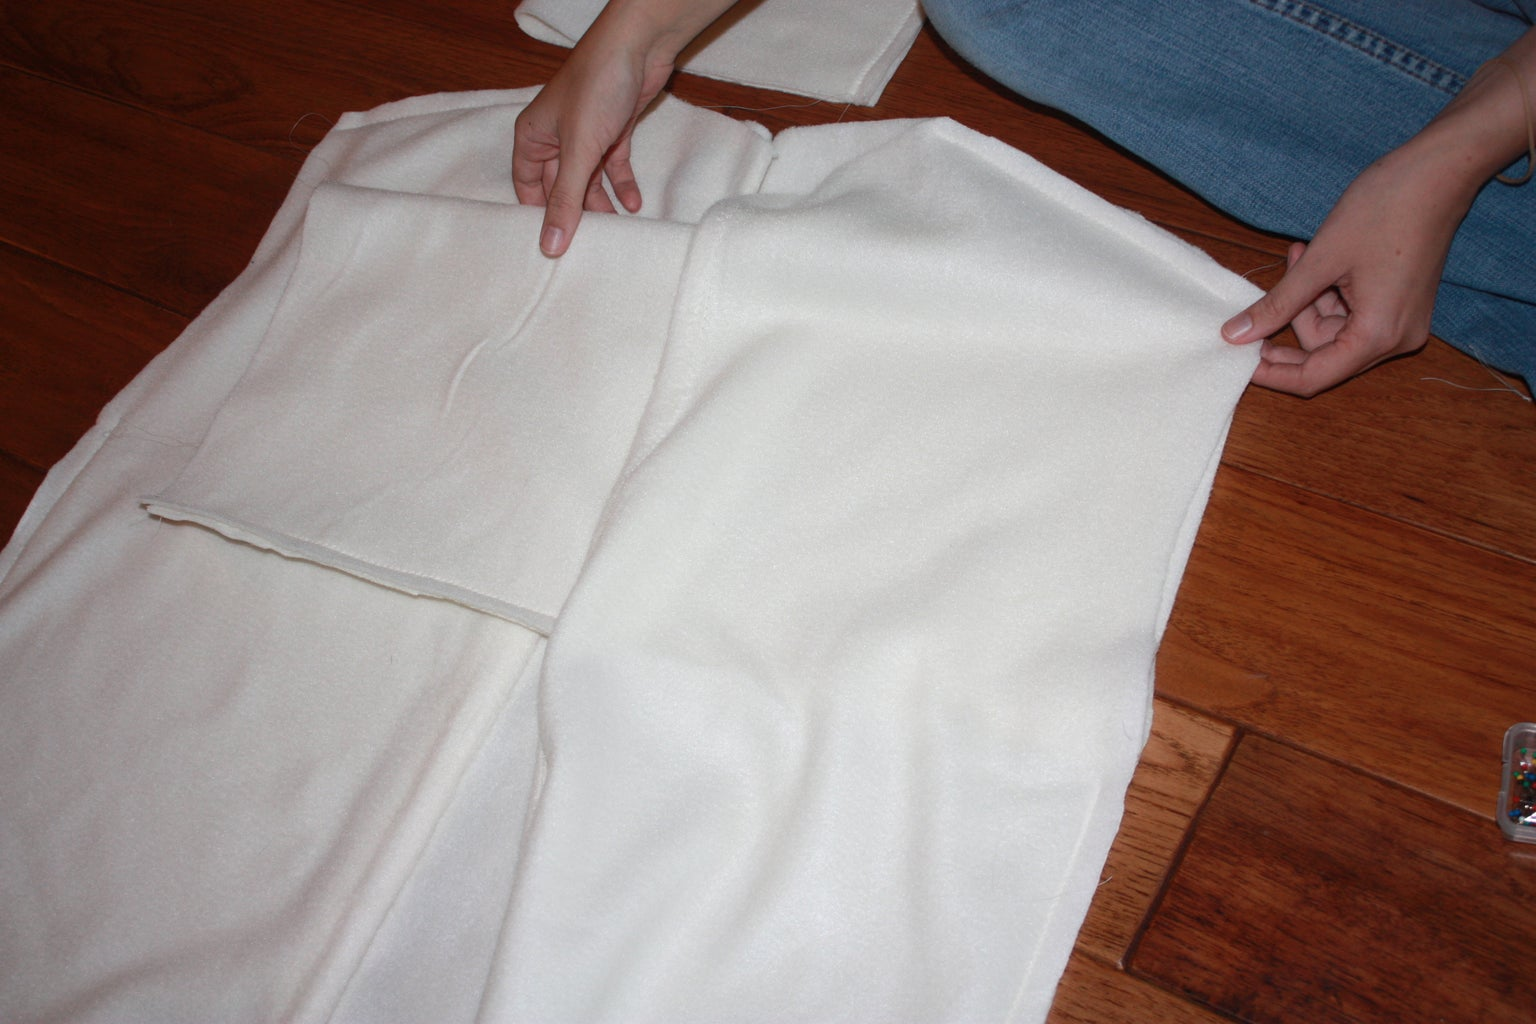 Attaching the Sleeves